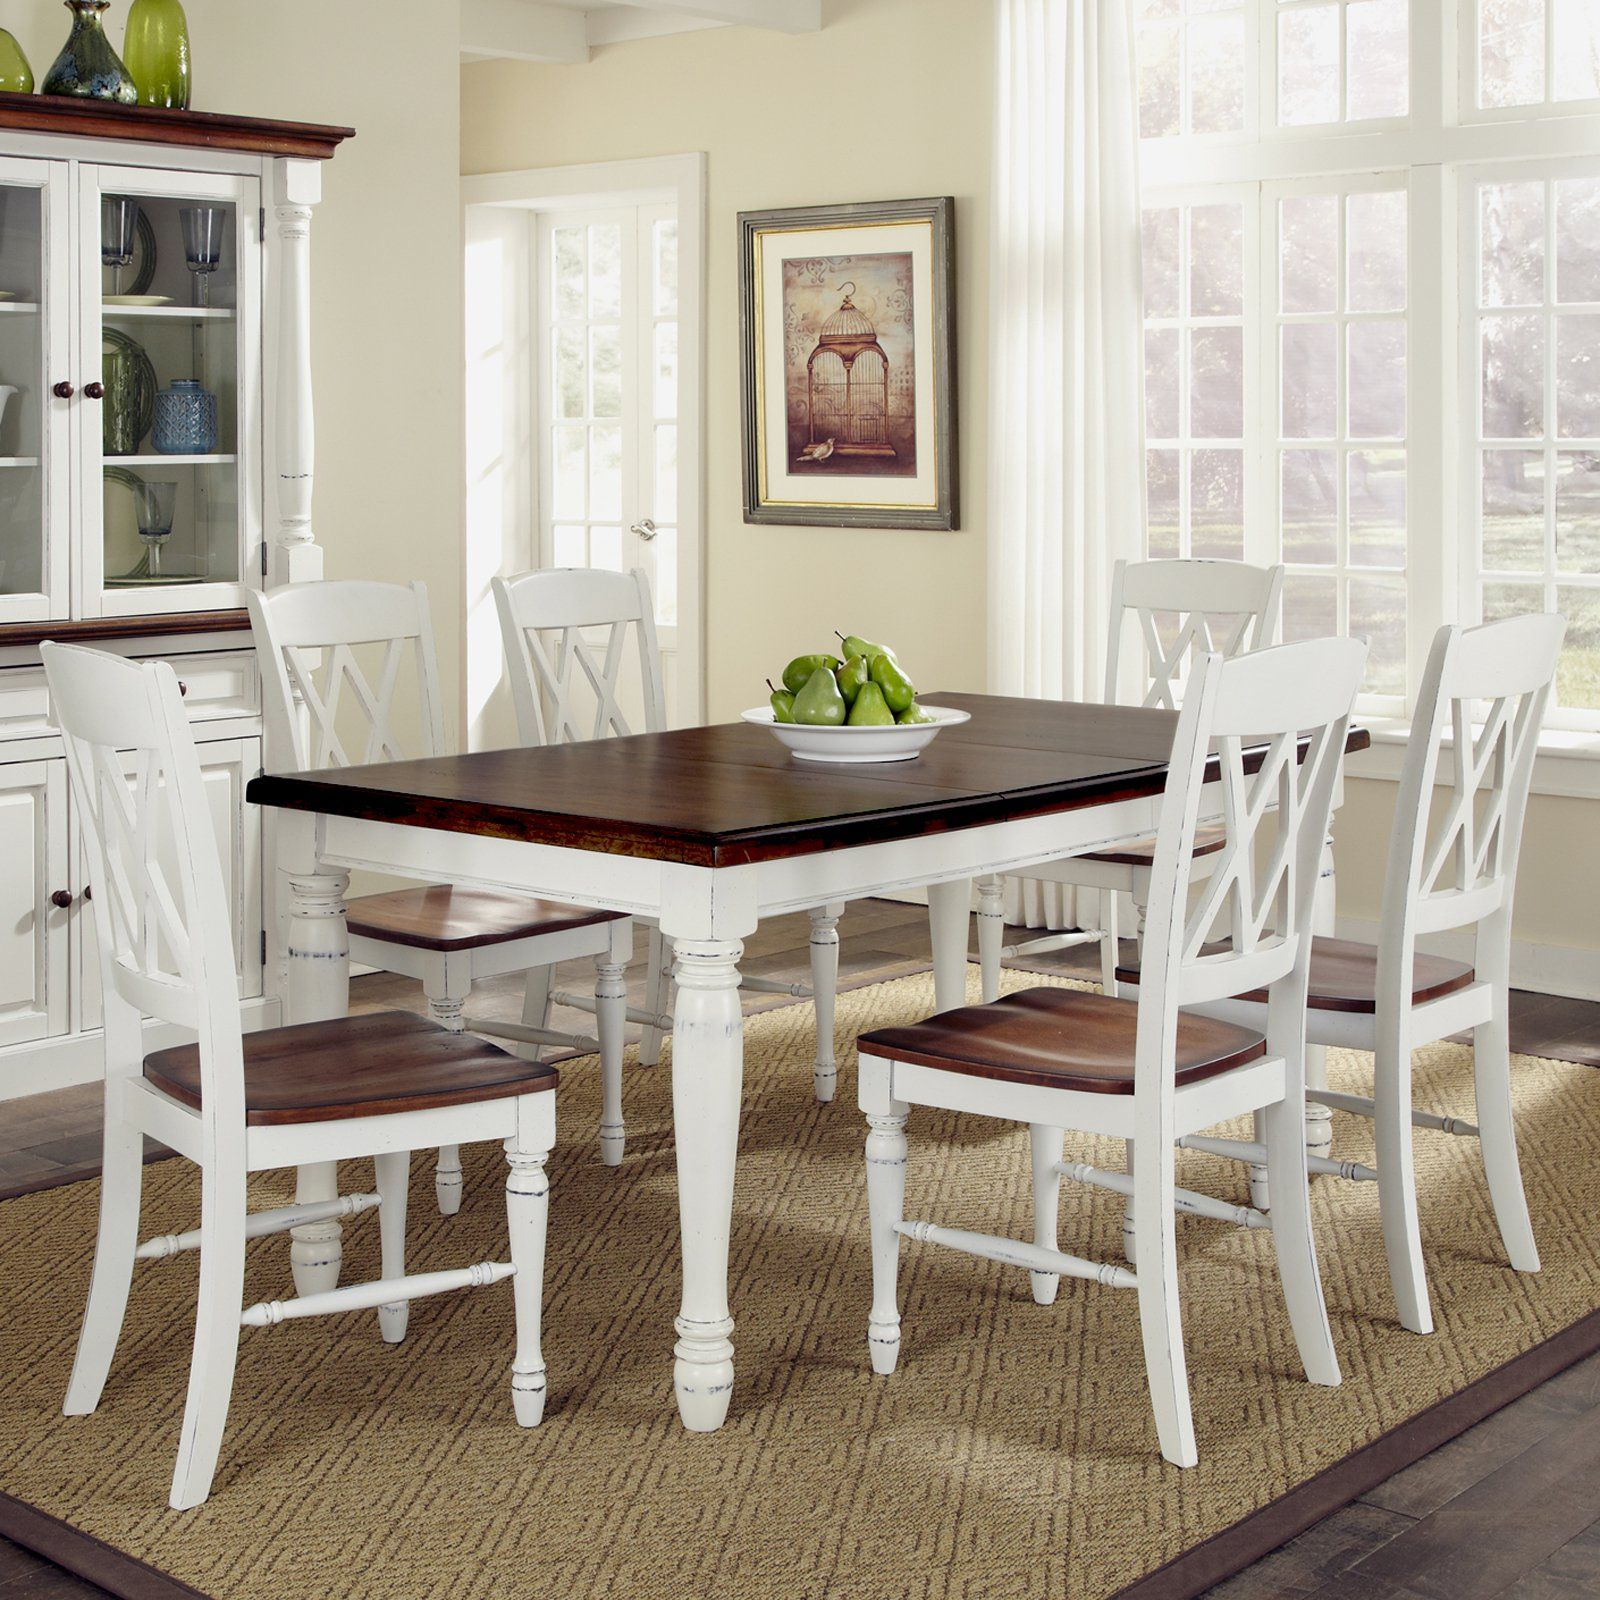 Rooms To Go Dining Sets: Have To Have It. Home Styles Monarch 7 Piece Dining Table